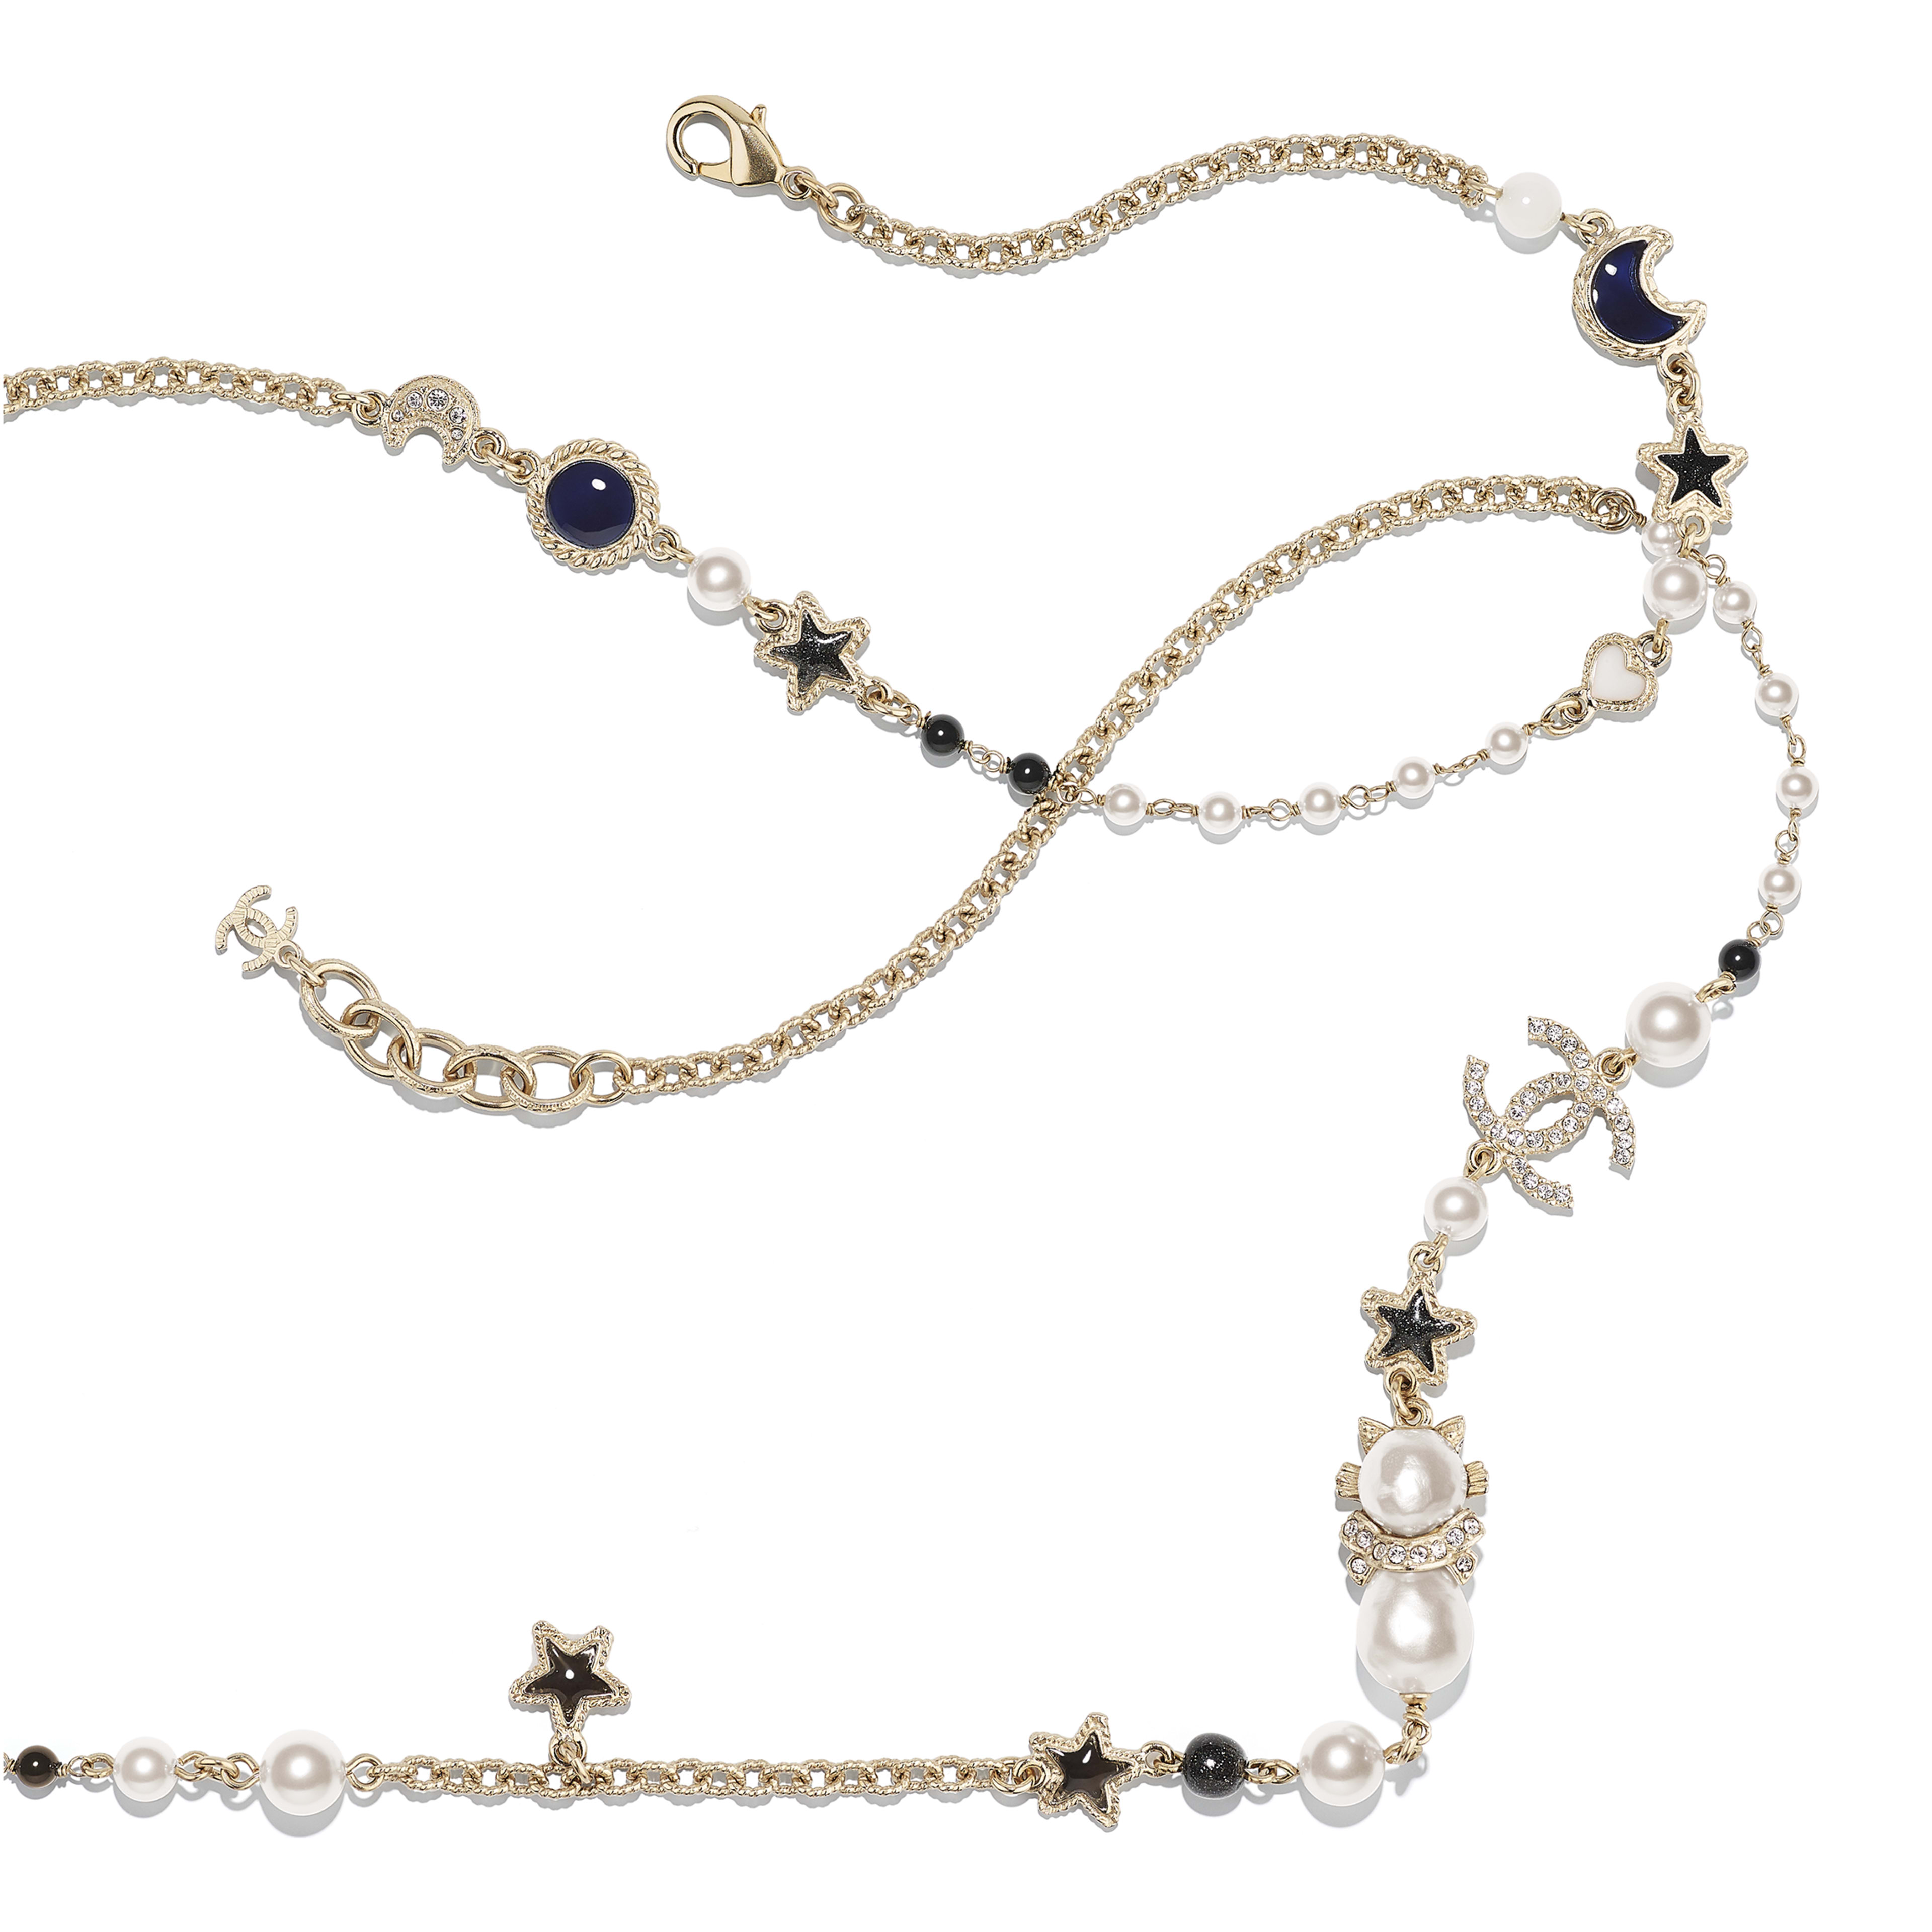 Metal Natural Stones Glass Pearls Imitation Pearls Strass Resin Gold Pearly White Crystal Blue Gray Long Necklace Chanel